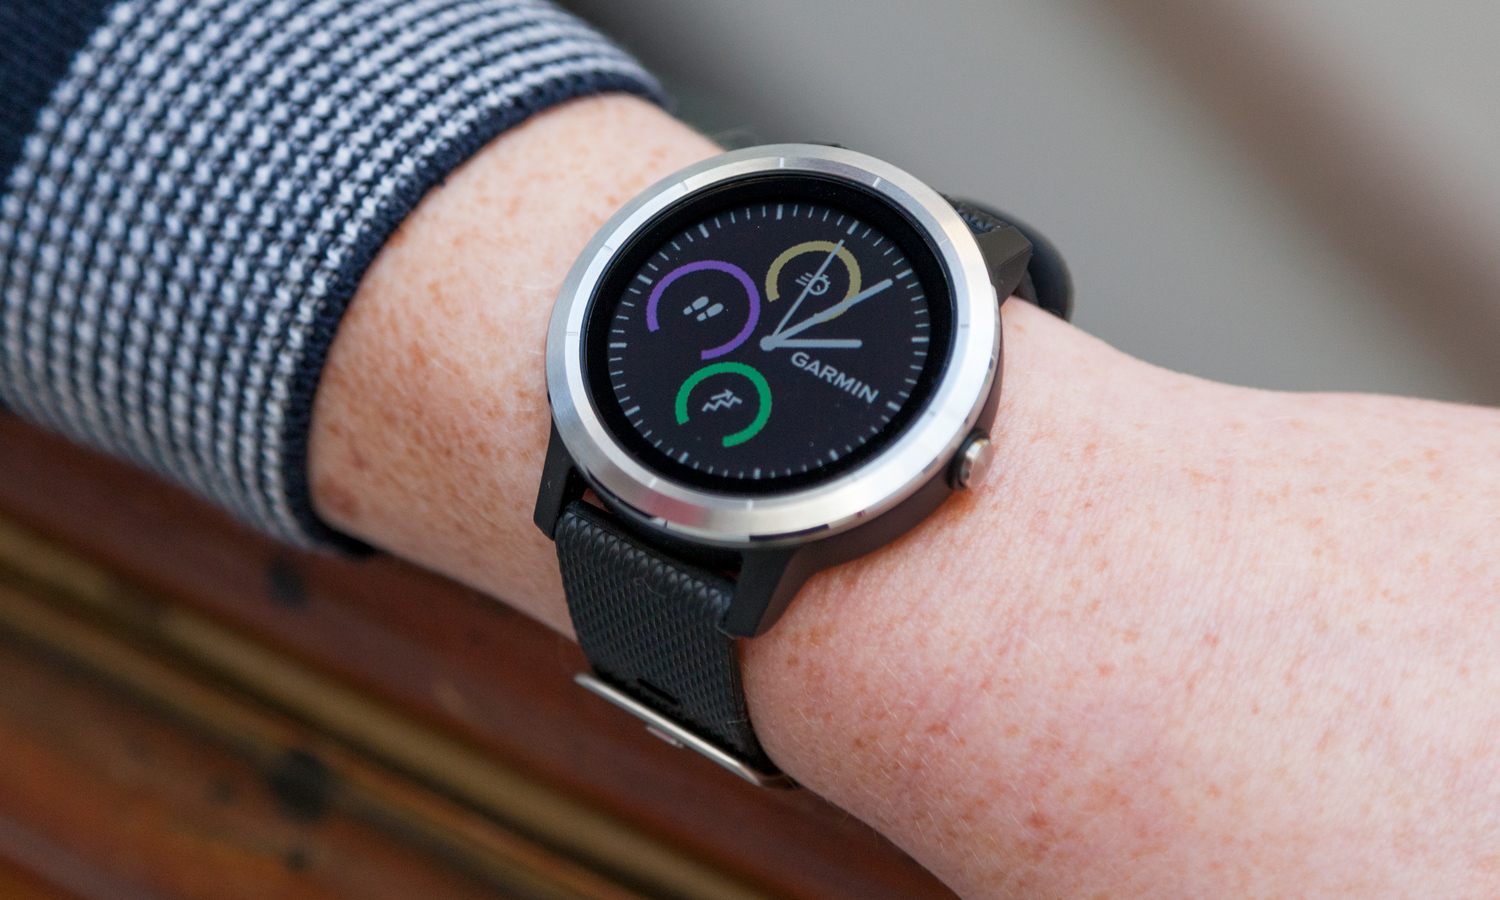 Garmin Vivoactive 3 Review: This Apple Watch Rival Wins on Fitness